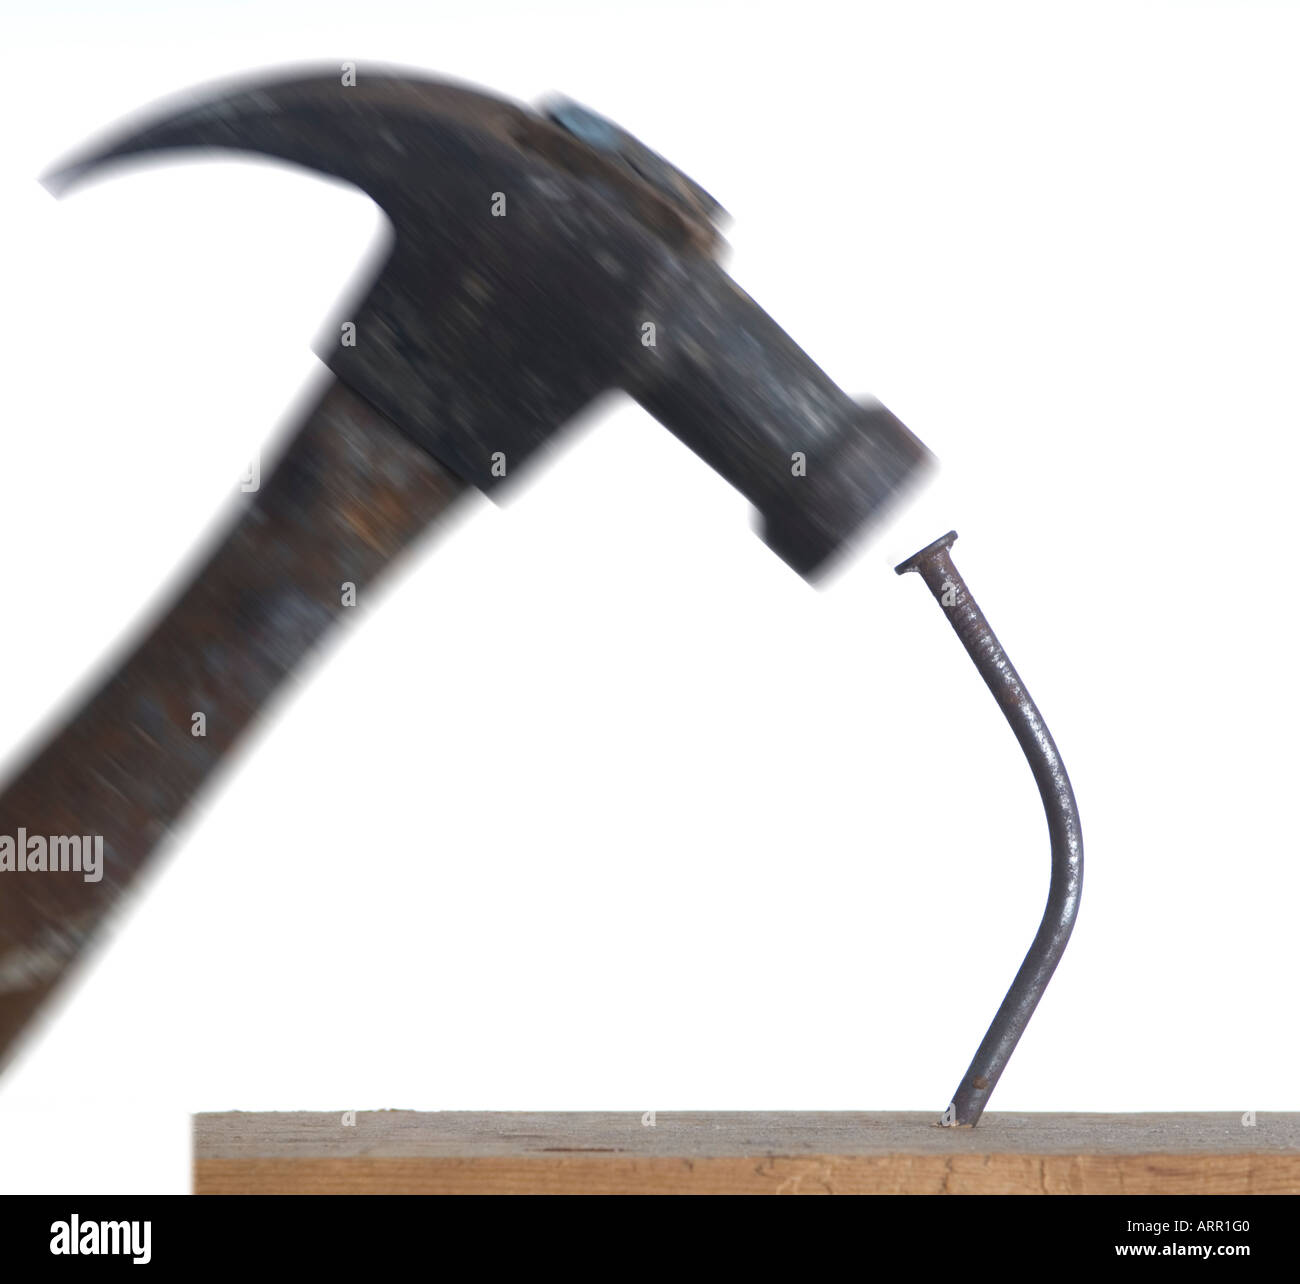 bent nail hammer Stock Photo